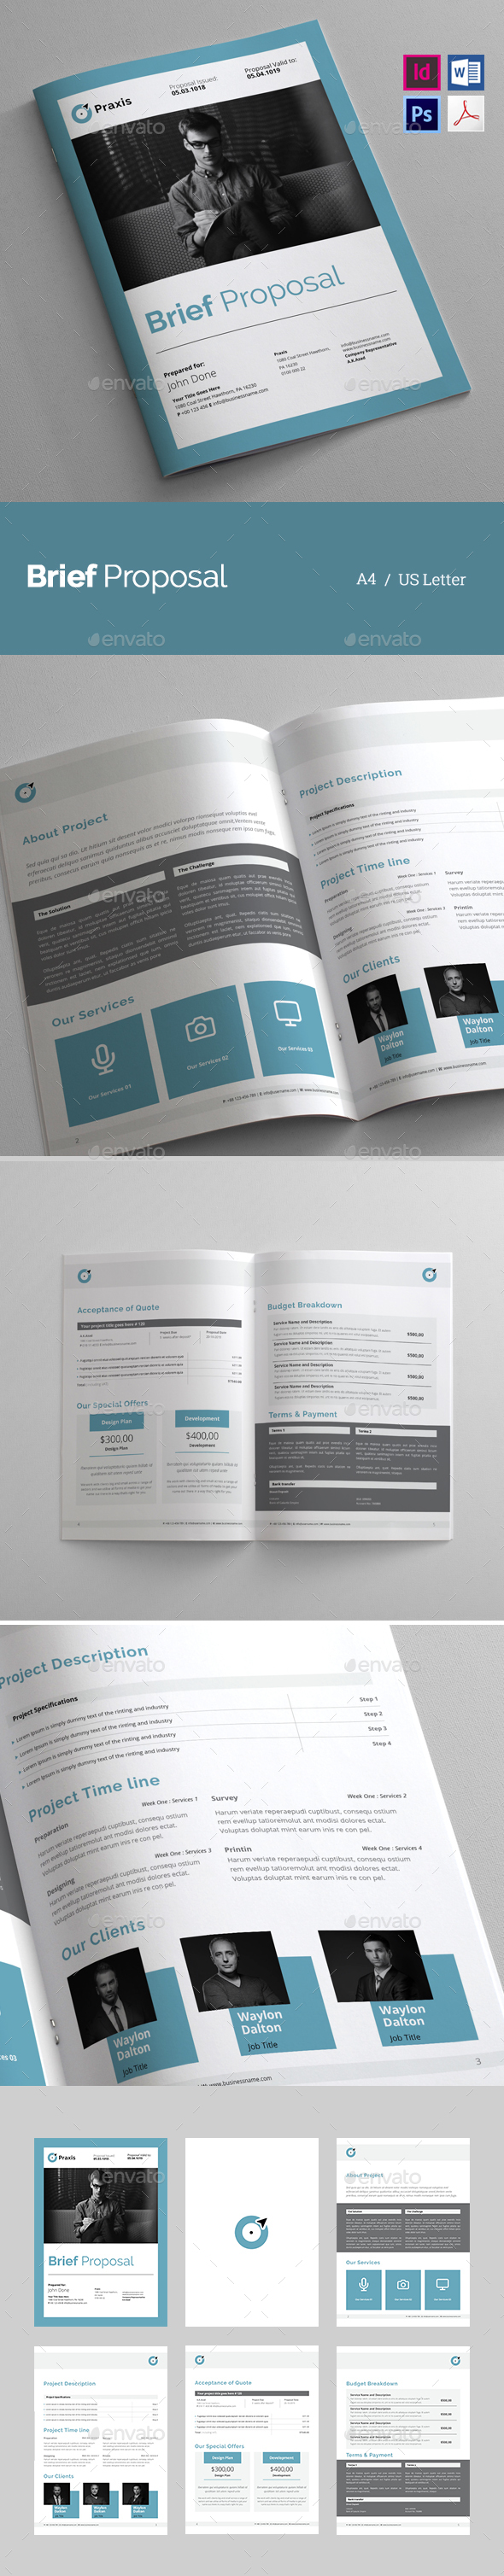 Brief Proposal - Proposals & Invoices Stationery